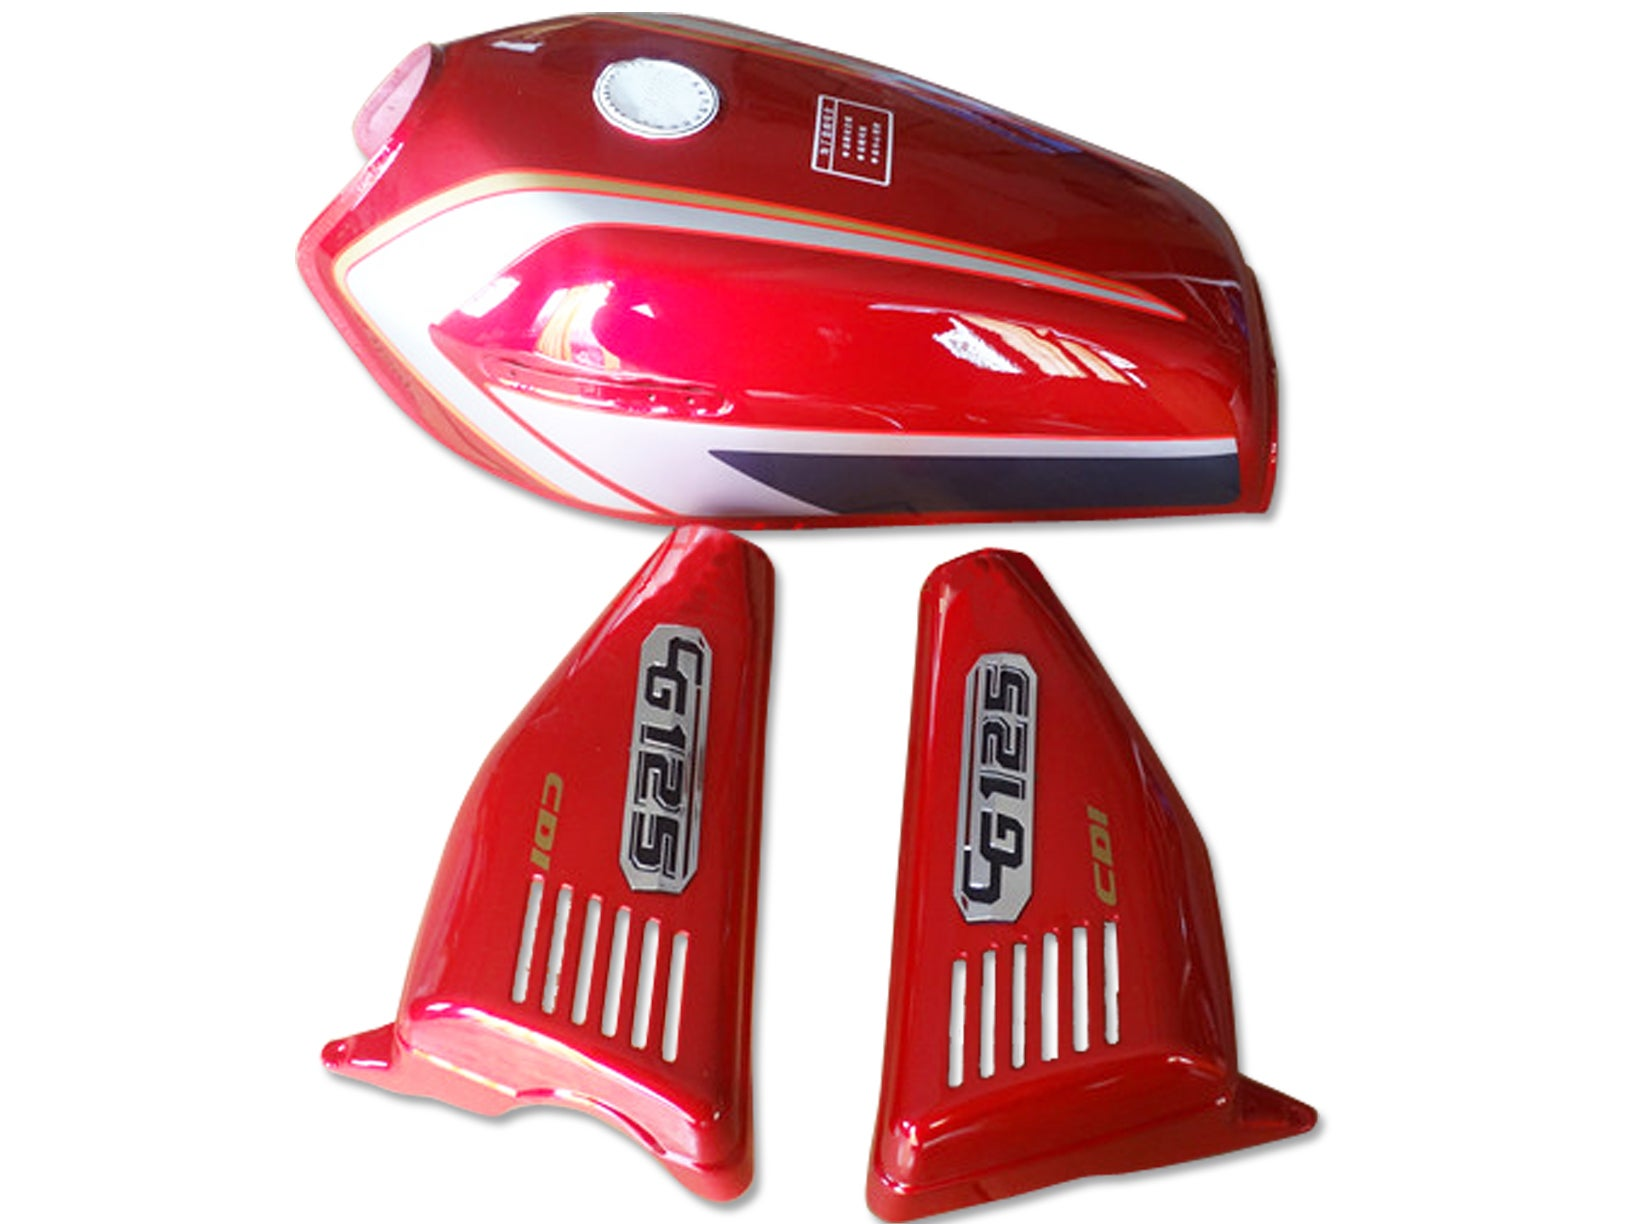 Cafe Racer Honda Cg125 Fuel Tank Gas Tank Cover Set 2